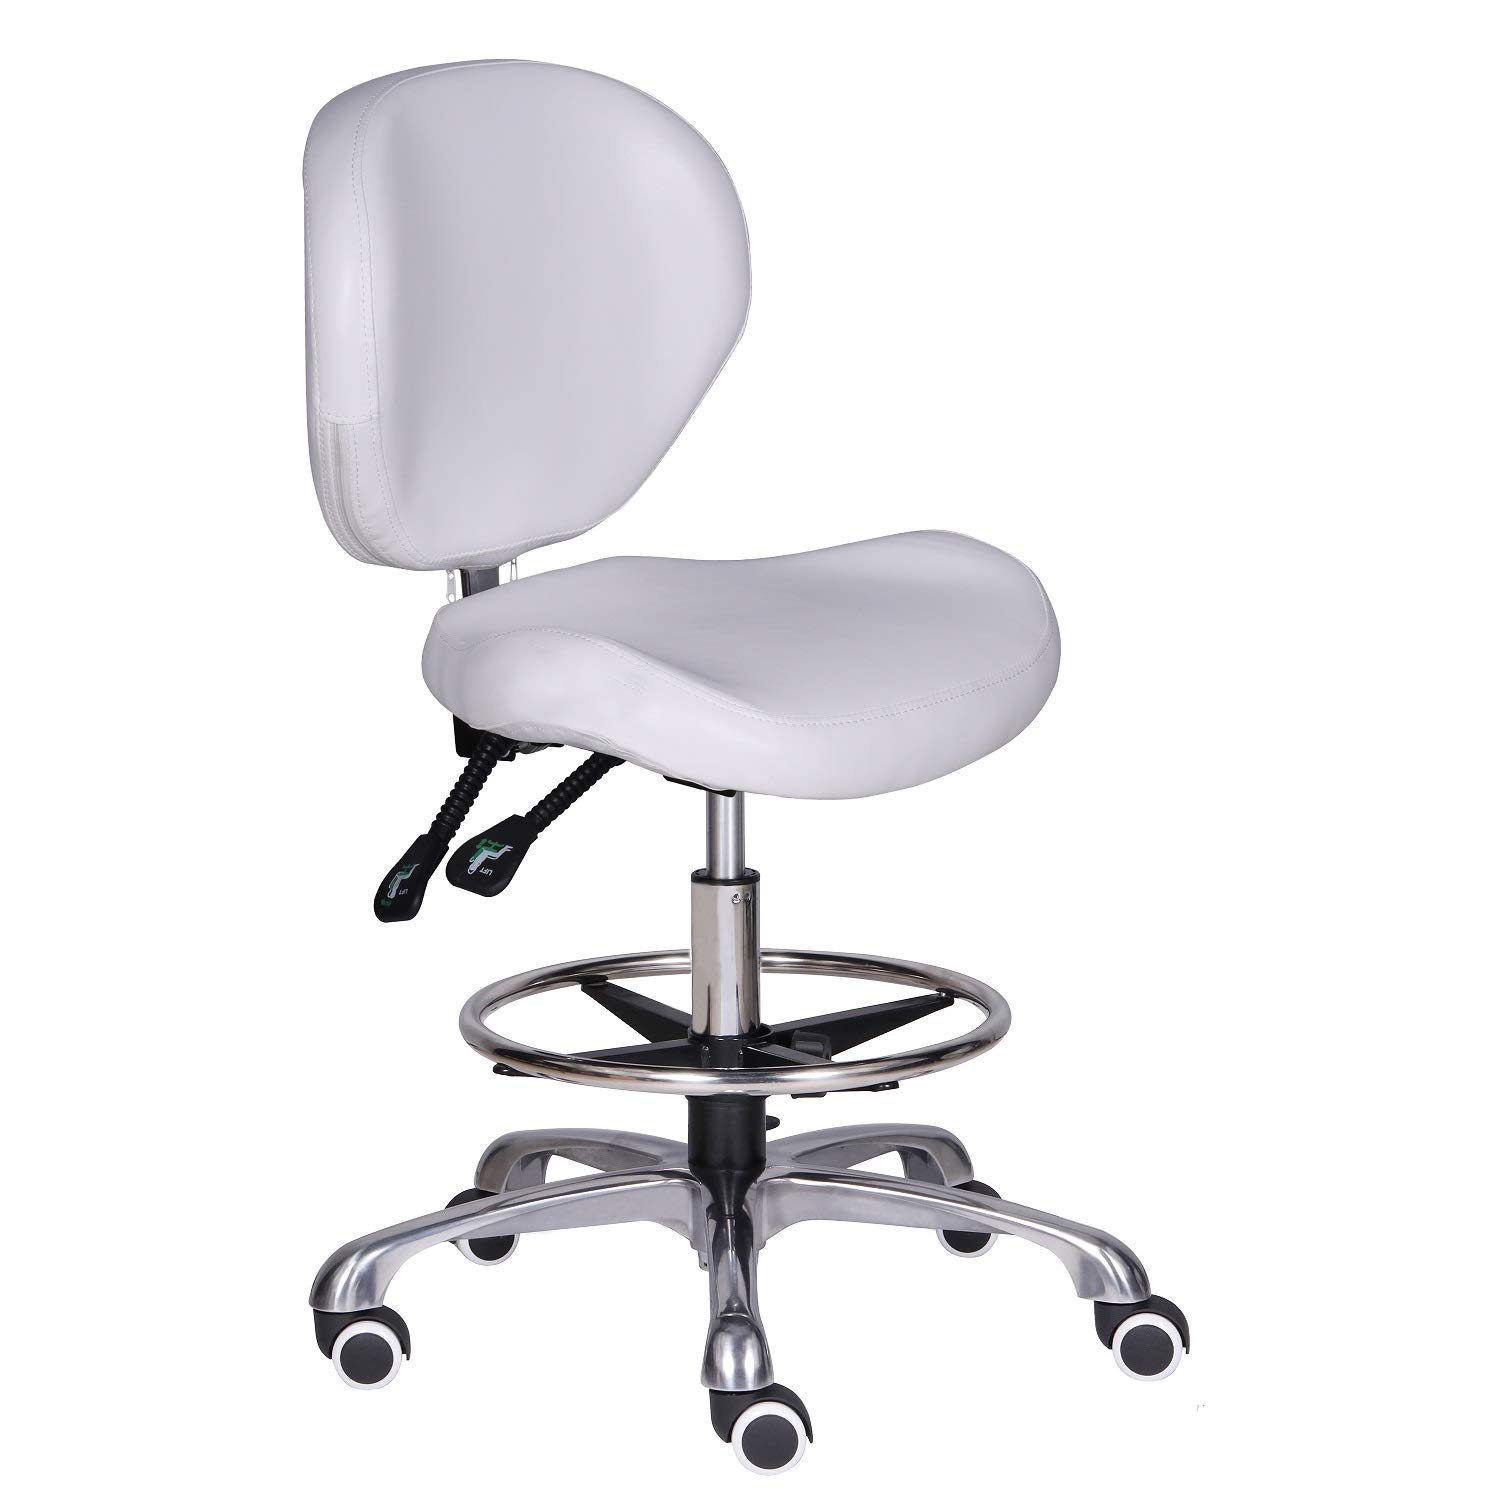 Kaleurrier Adjustable Stools Drafting Chair with Backrest & Foot Rest,Tilt Back,Peneumatic Lifting Height,Swivel Seat,Rolling wheels,for Studio,Dental,Office,Salon and Counter,Home Desk Chairs (White) by Kaleurrier